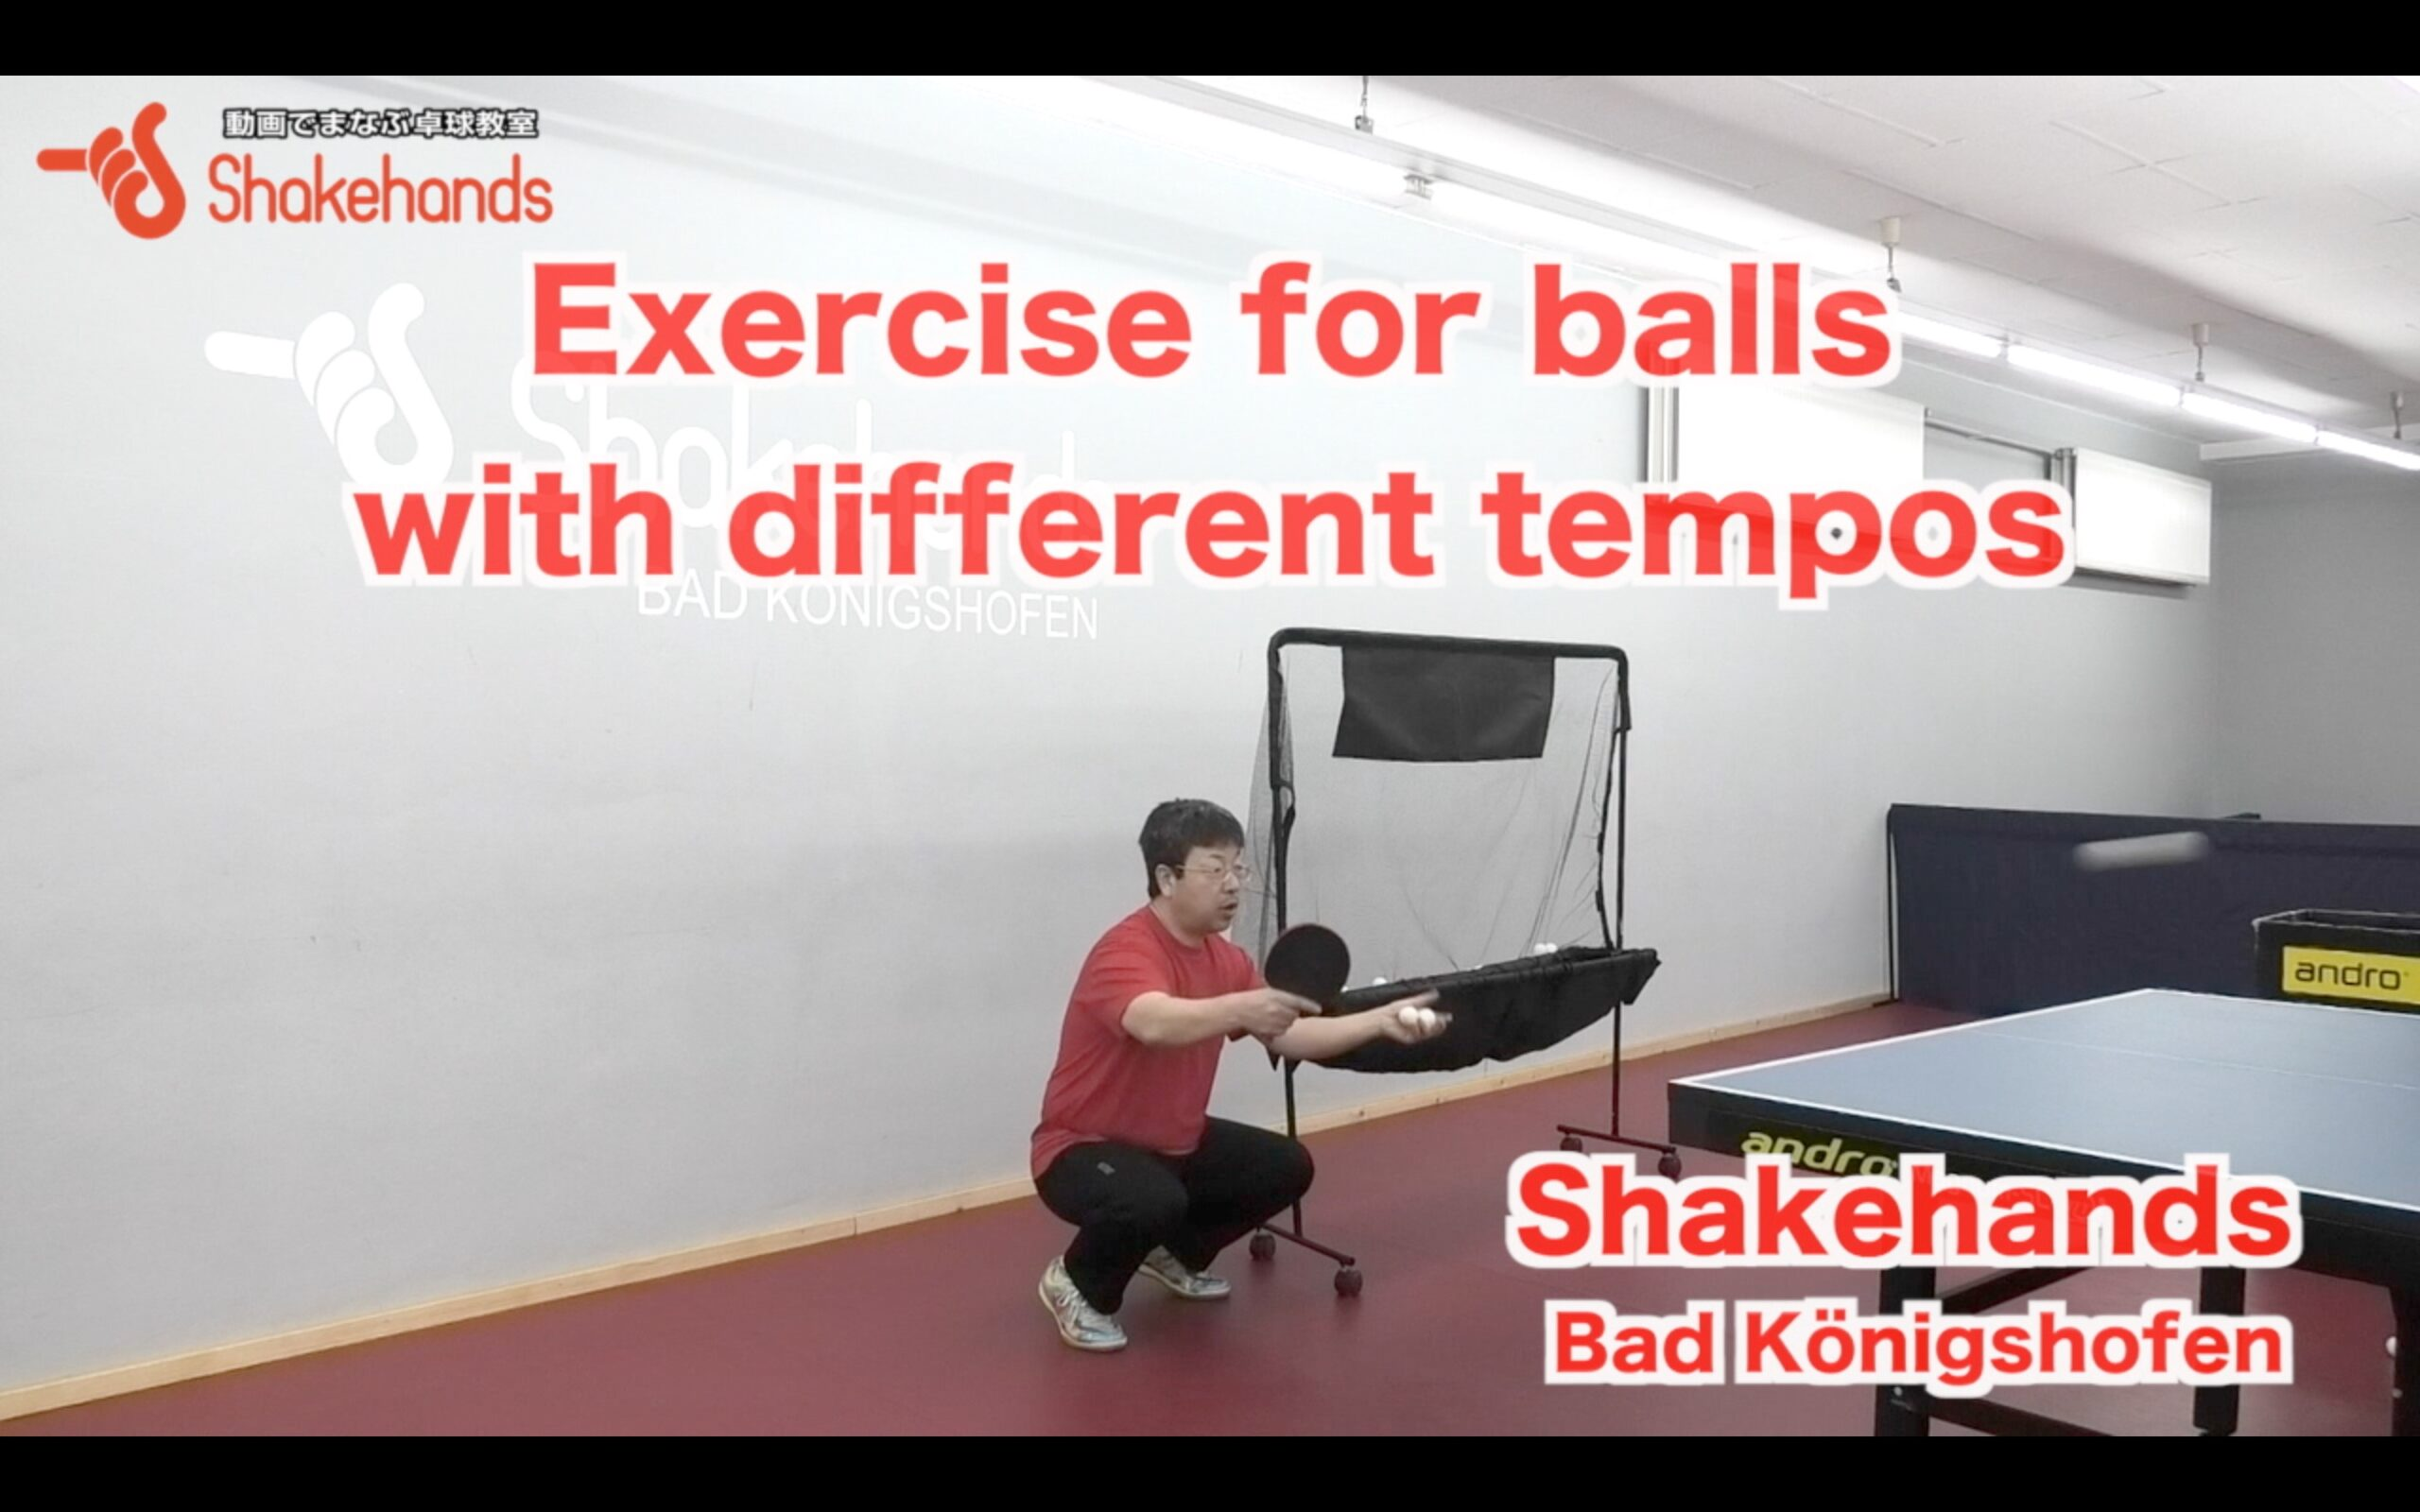 Exercise for balls with different tempos